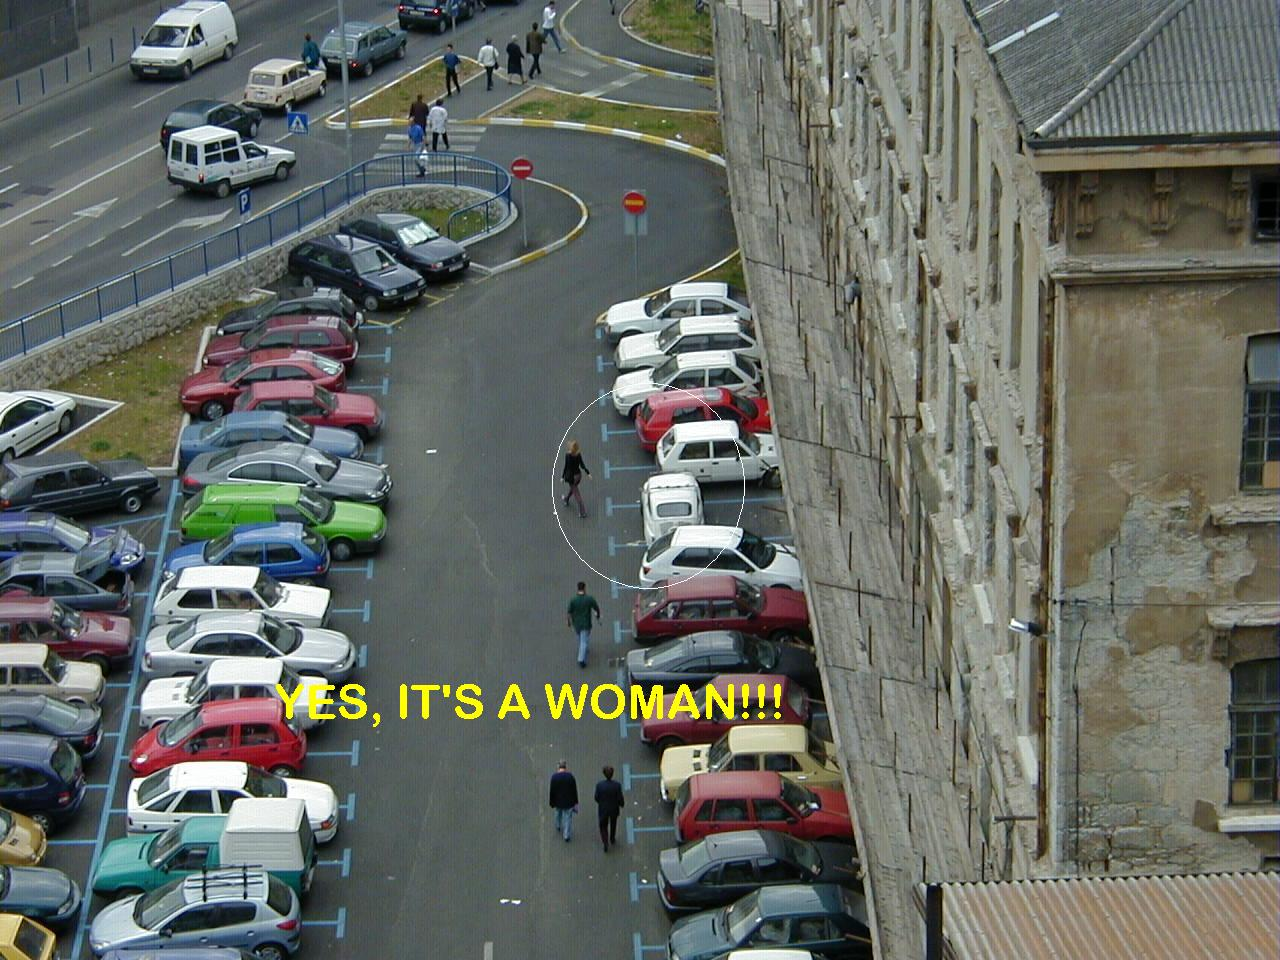 How a woman parks her car